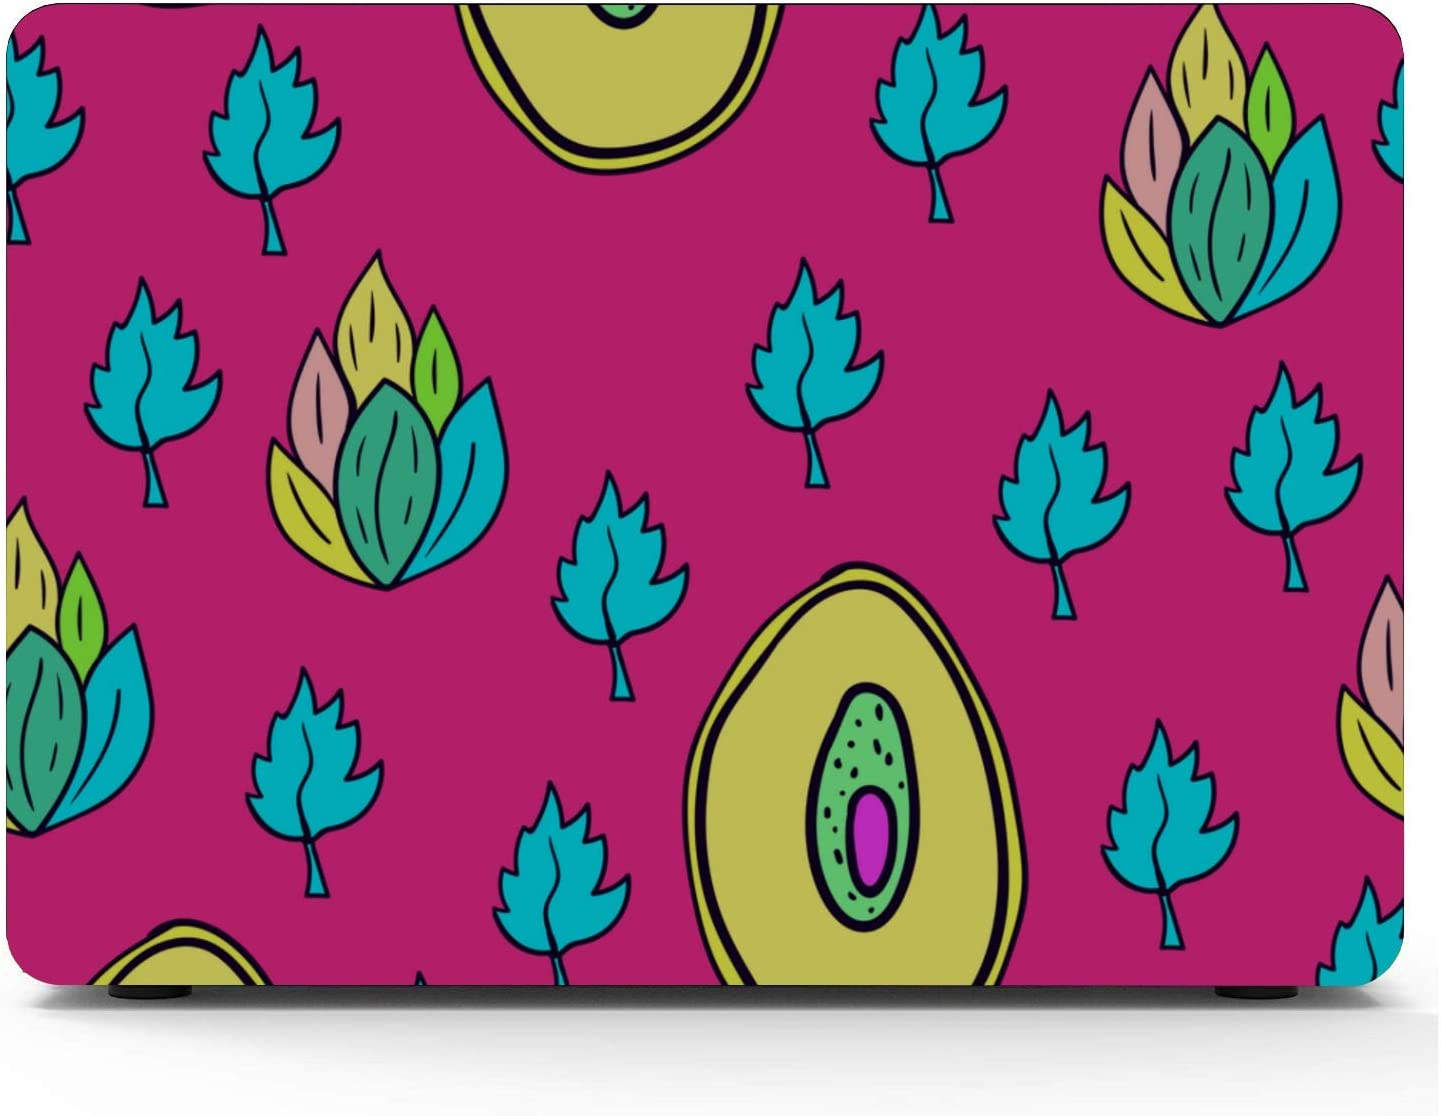 MacBook Air 13 Inches Summer Fashion Fruit Dragon Love Plastic Hard Shell Compatible Mac Air 11 Pro 13 15 MacBook Pro Accessories Protection for MacBook 2016-2019 Version